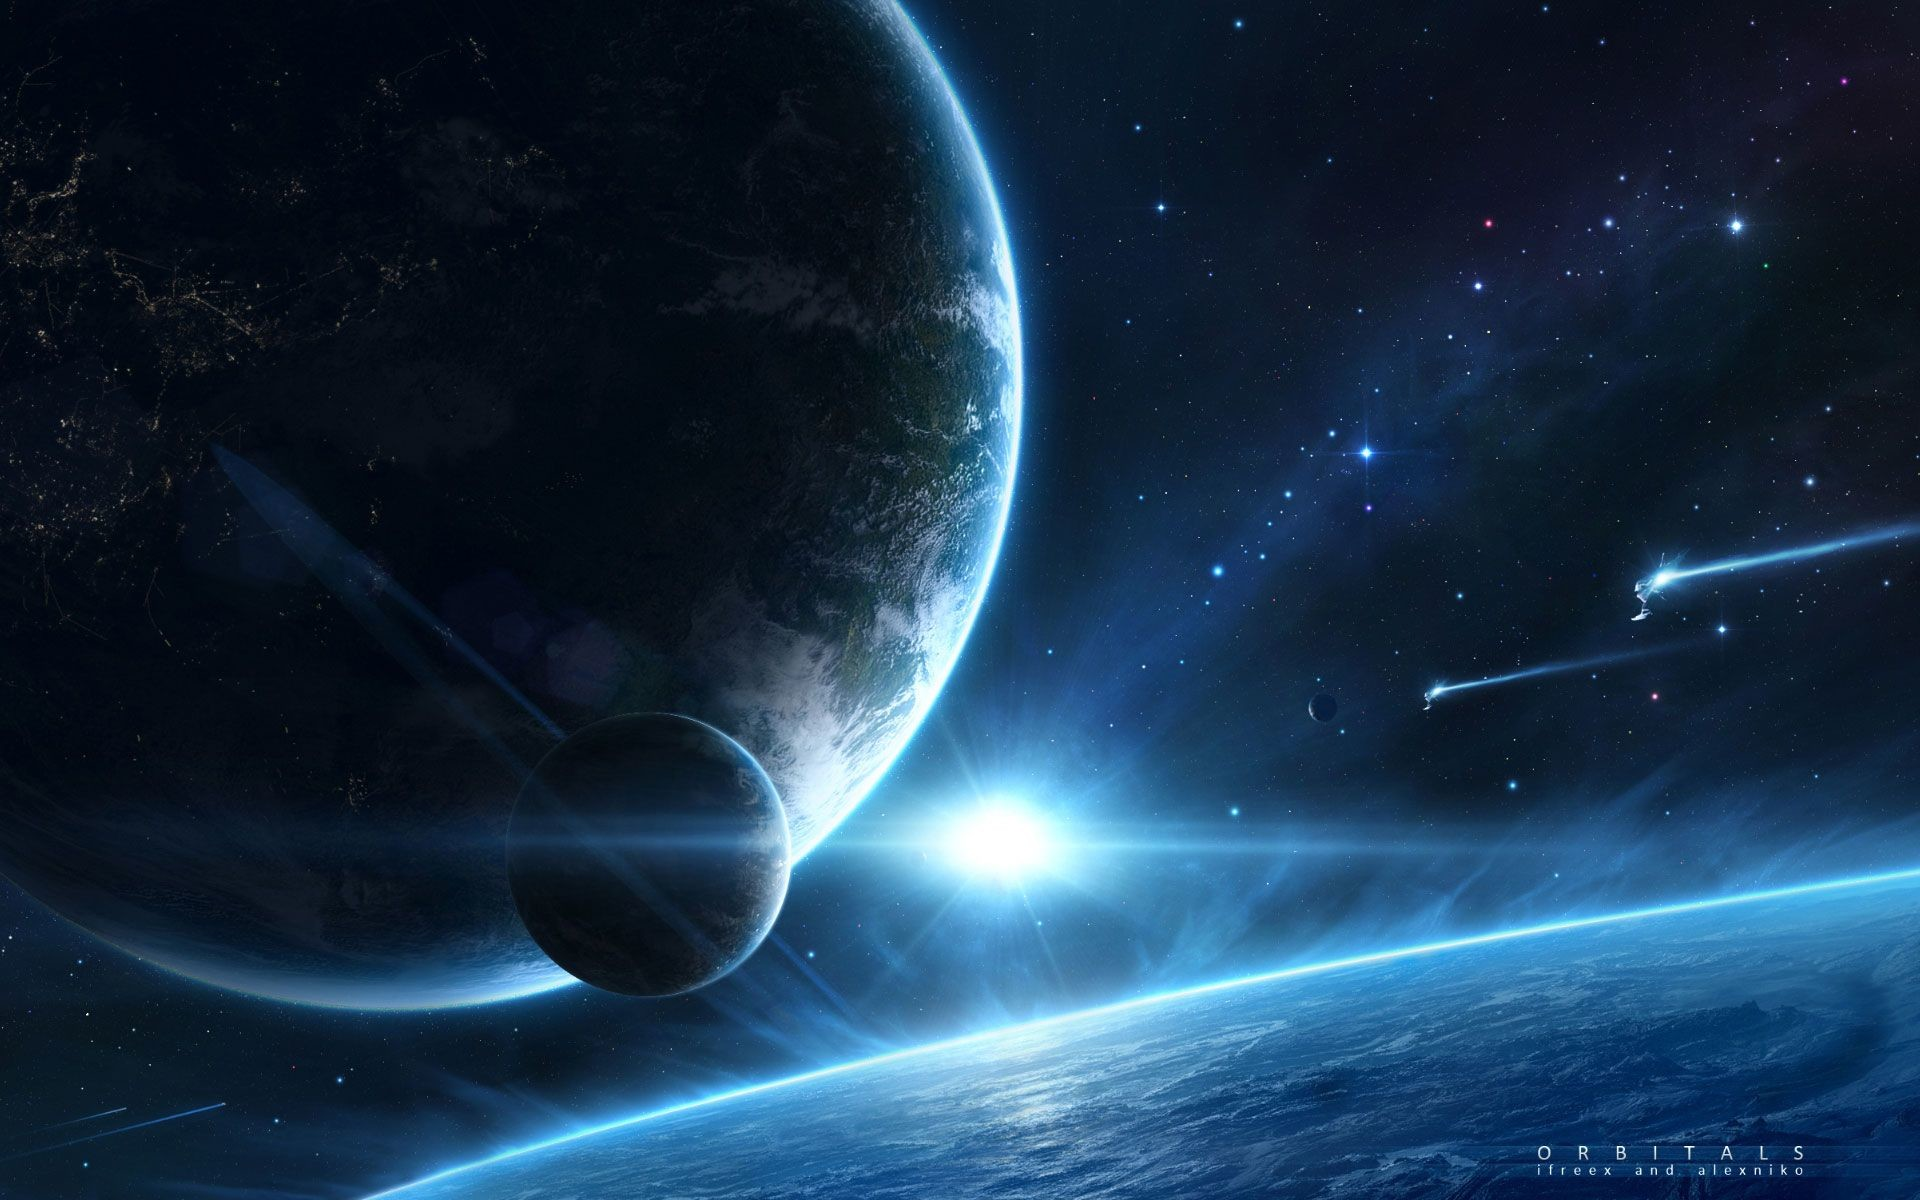 Space wallpaper hd widescreen 62 images - Space wallpaper desktop ...